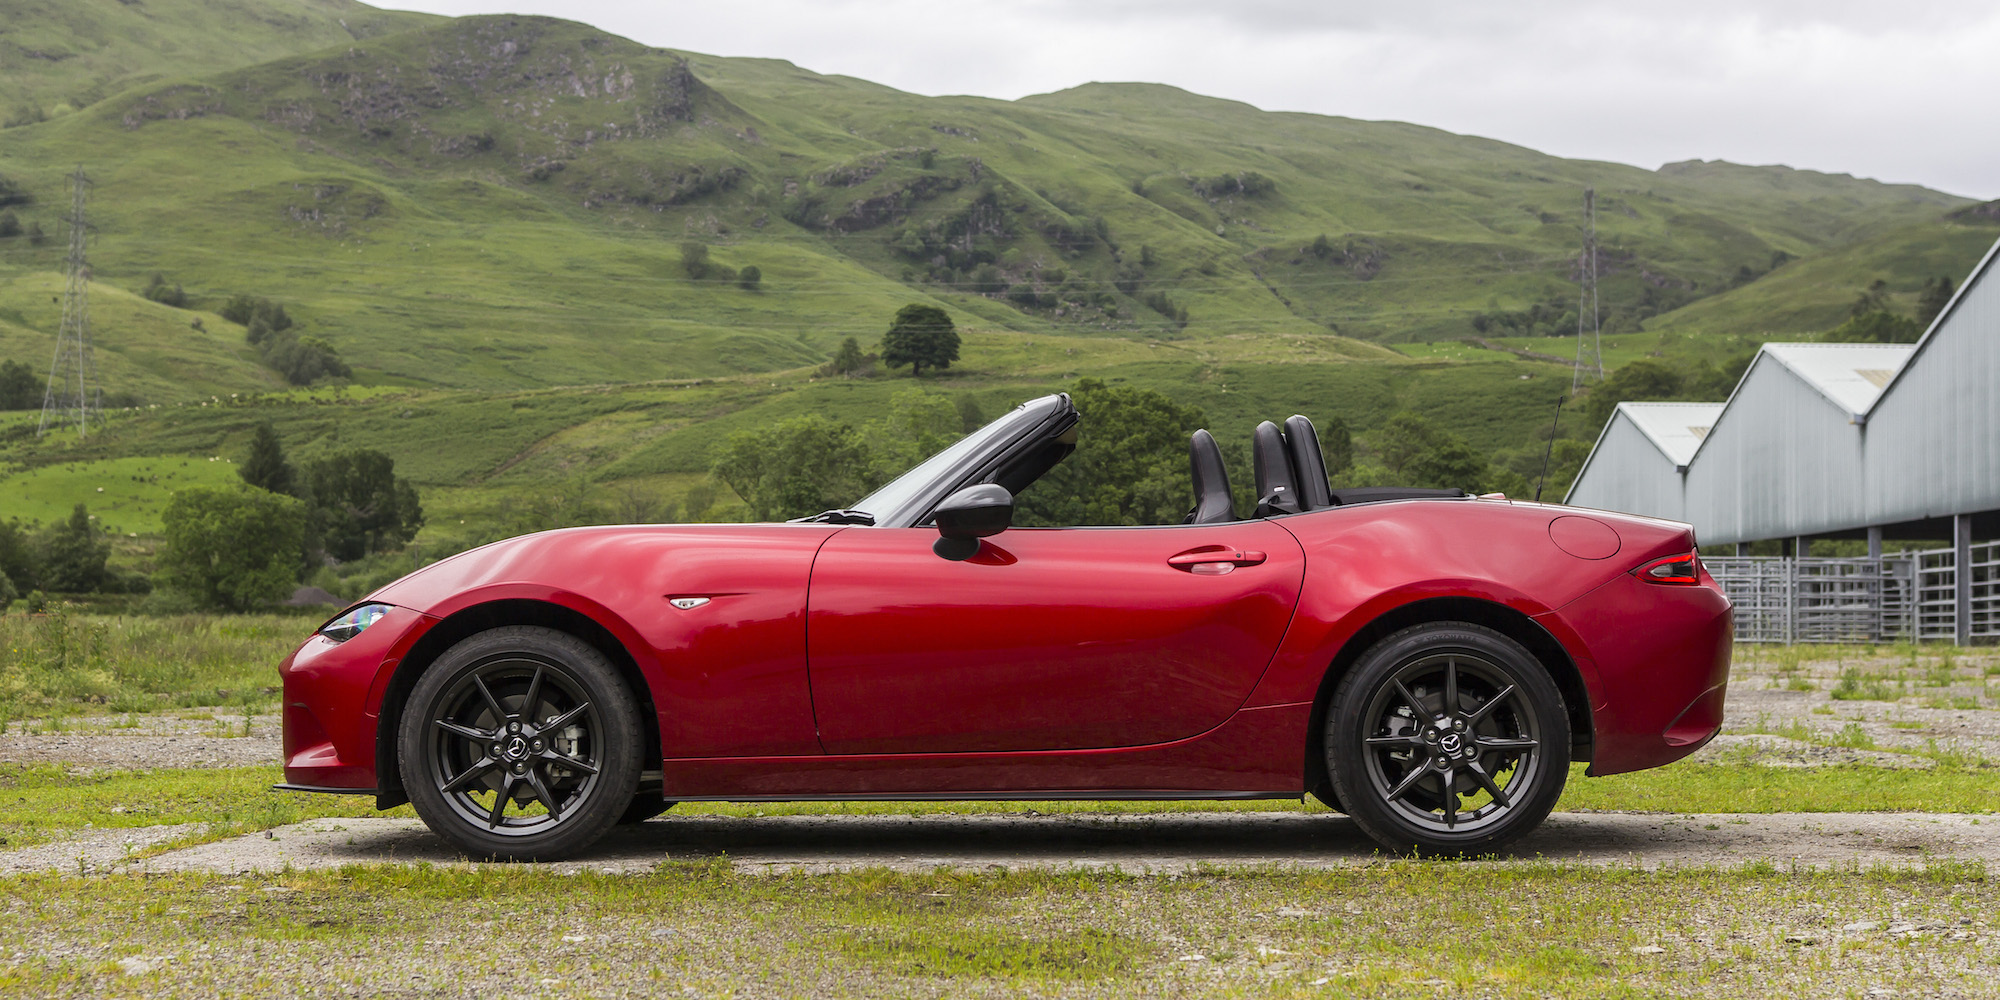 2016 Mazda Mx 5 Side Exterior (Photo 27 of 31)